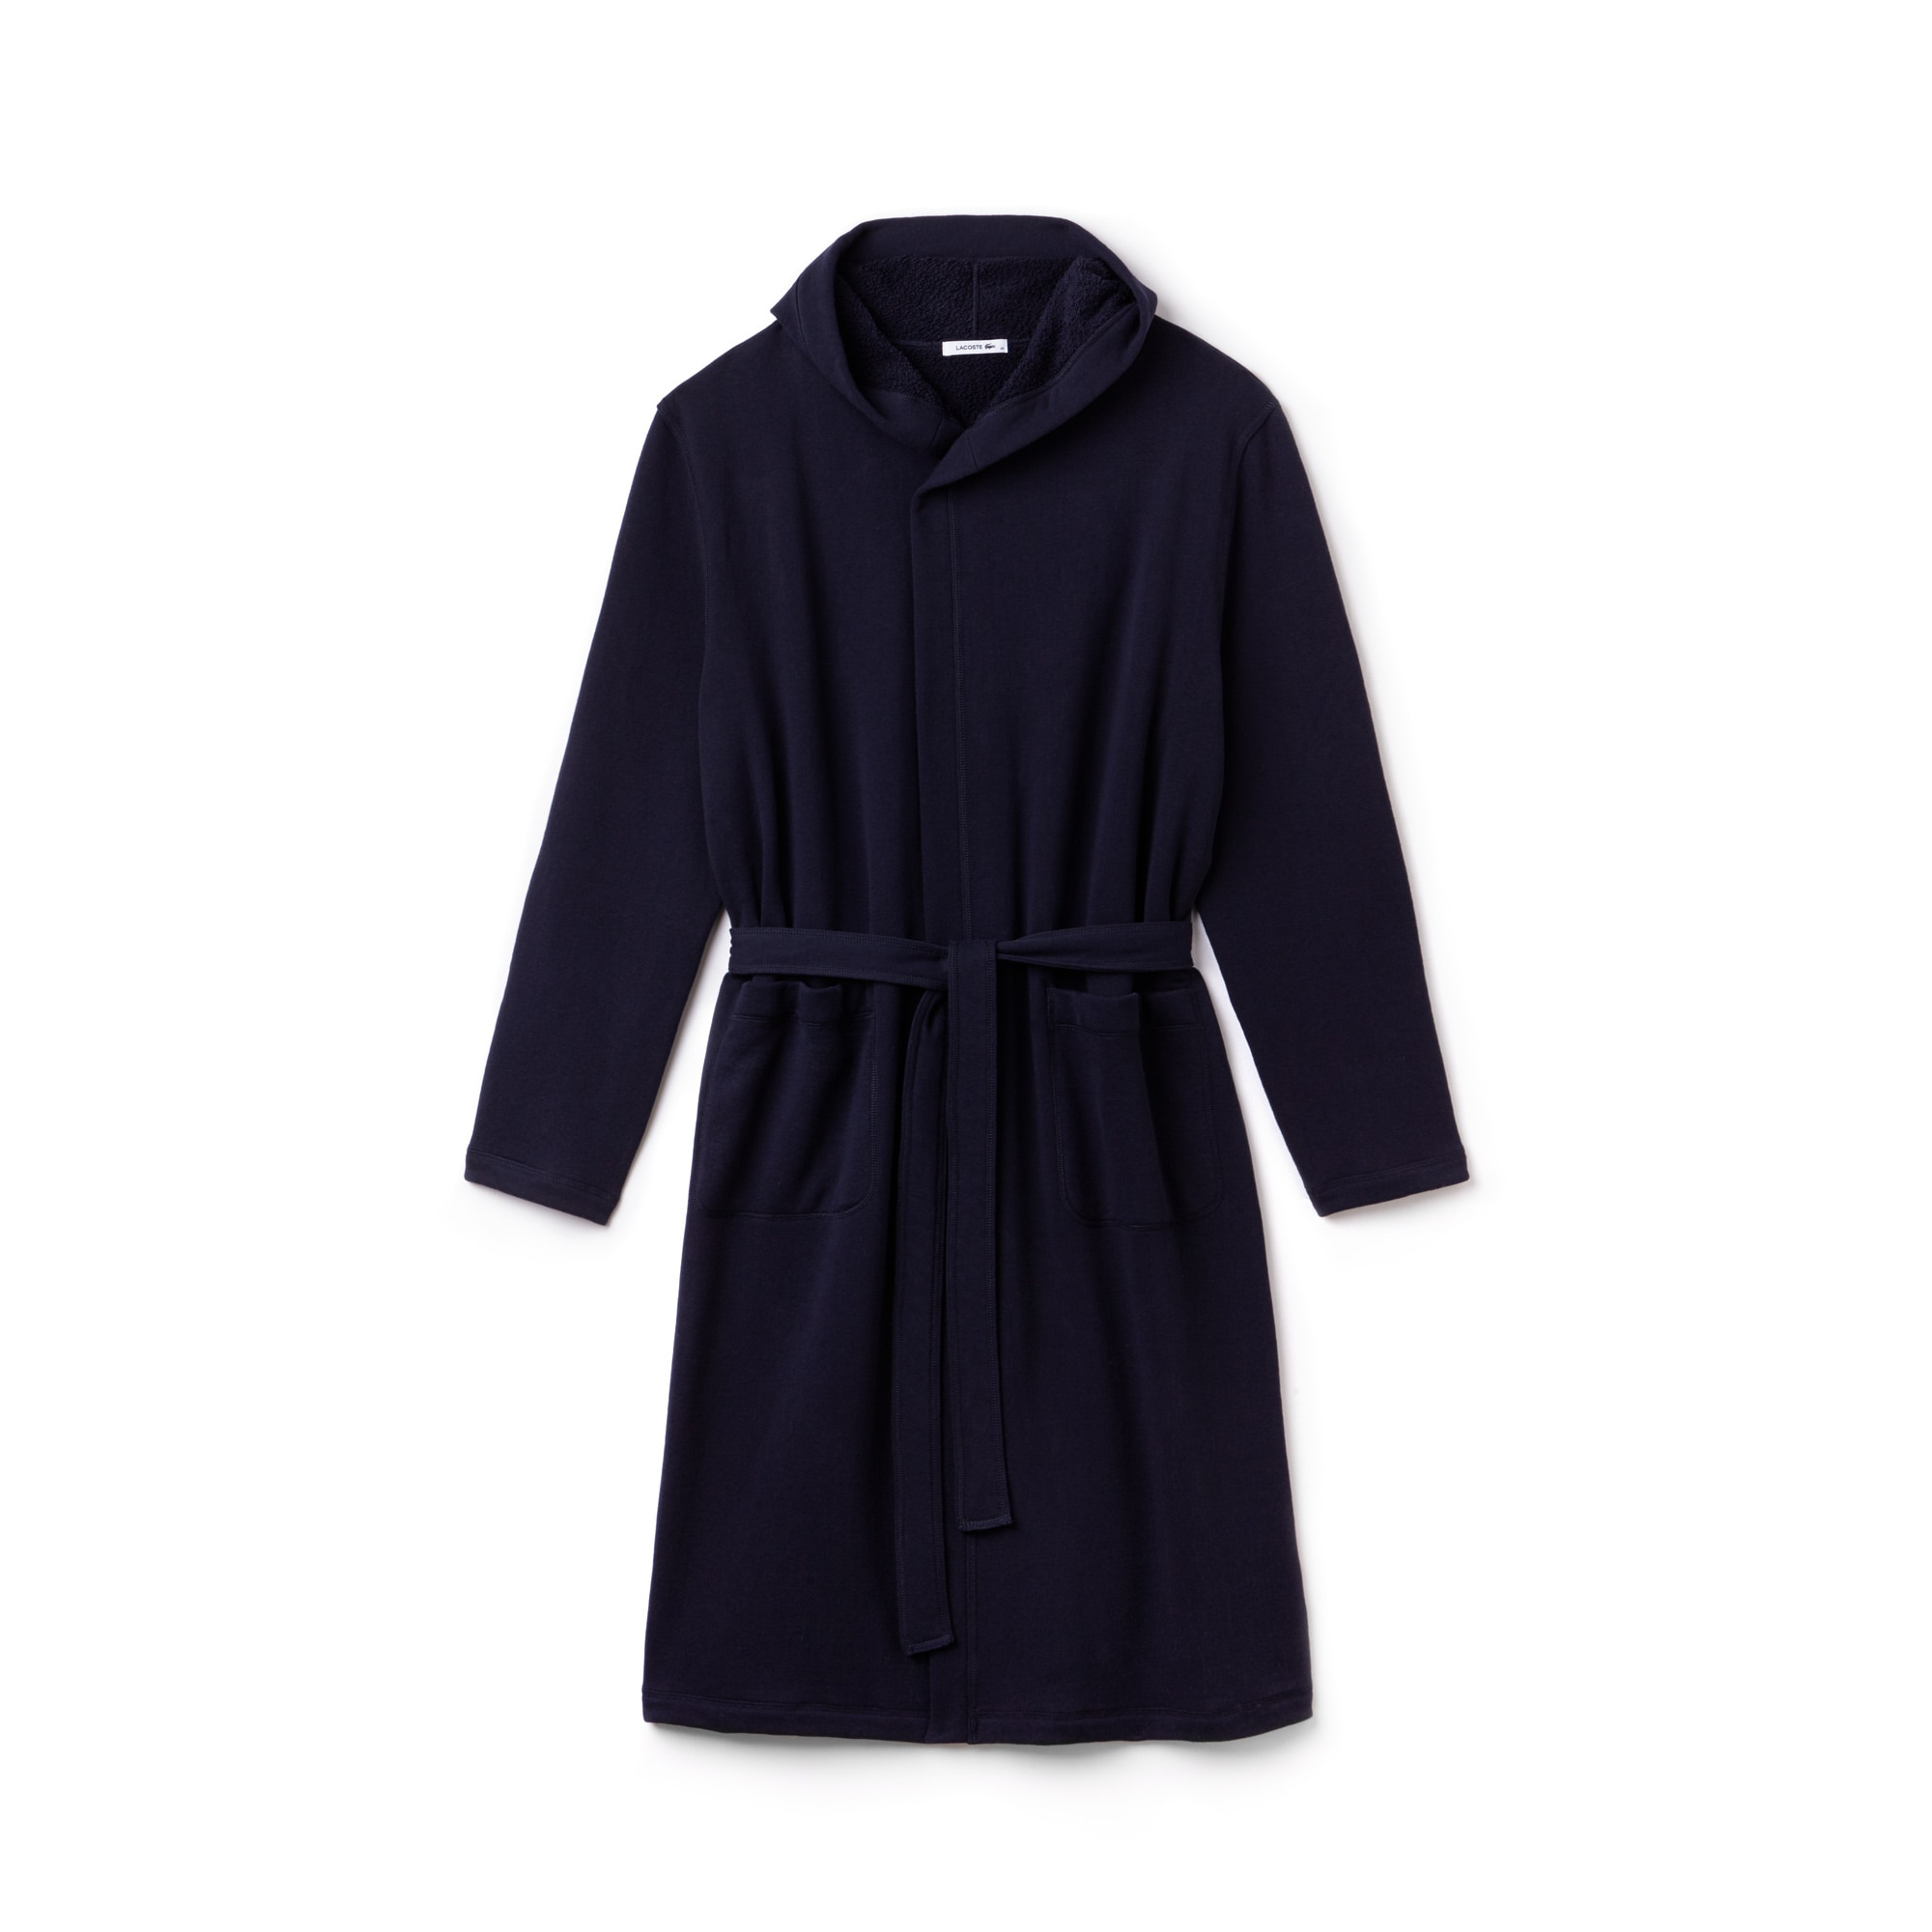 Men's Fashion Show Long Hooded Belted Fleece Crossover Coat